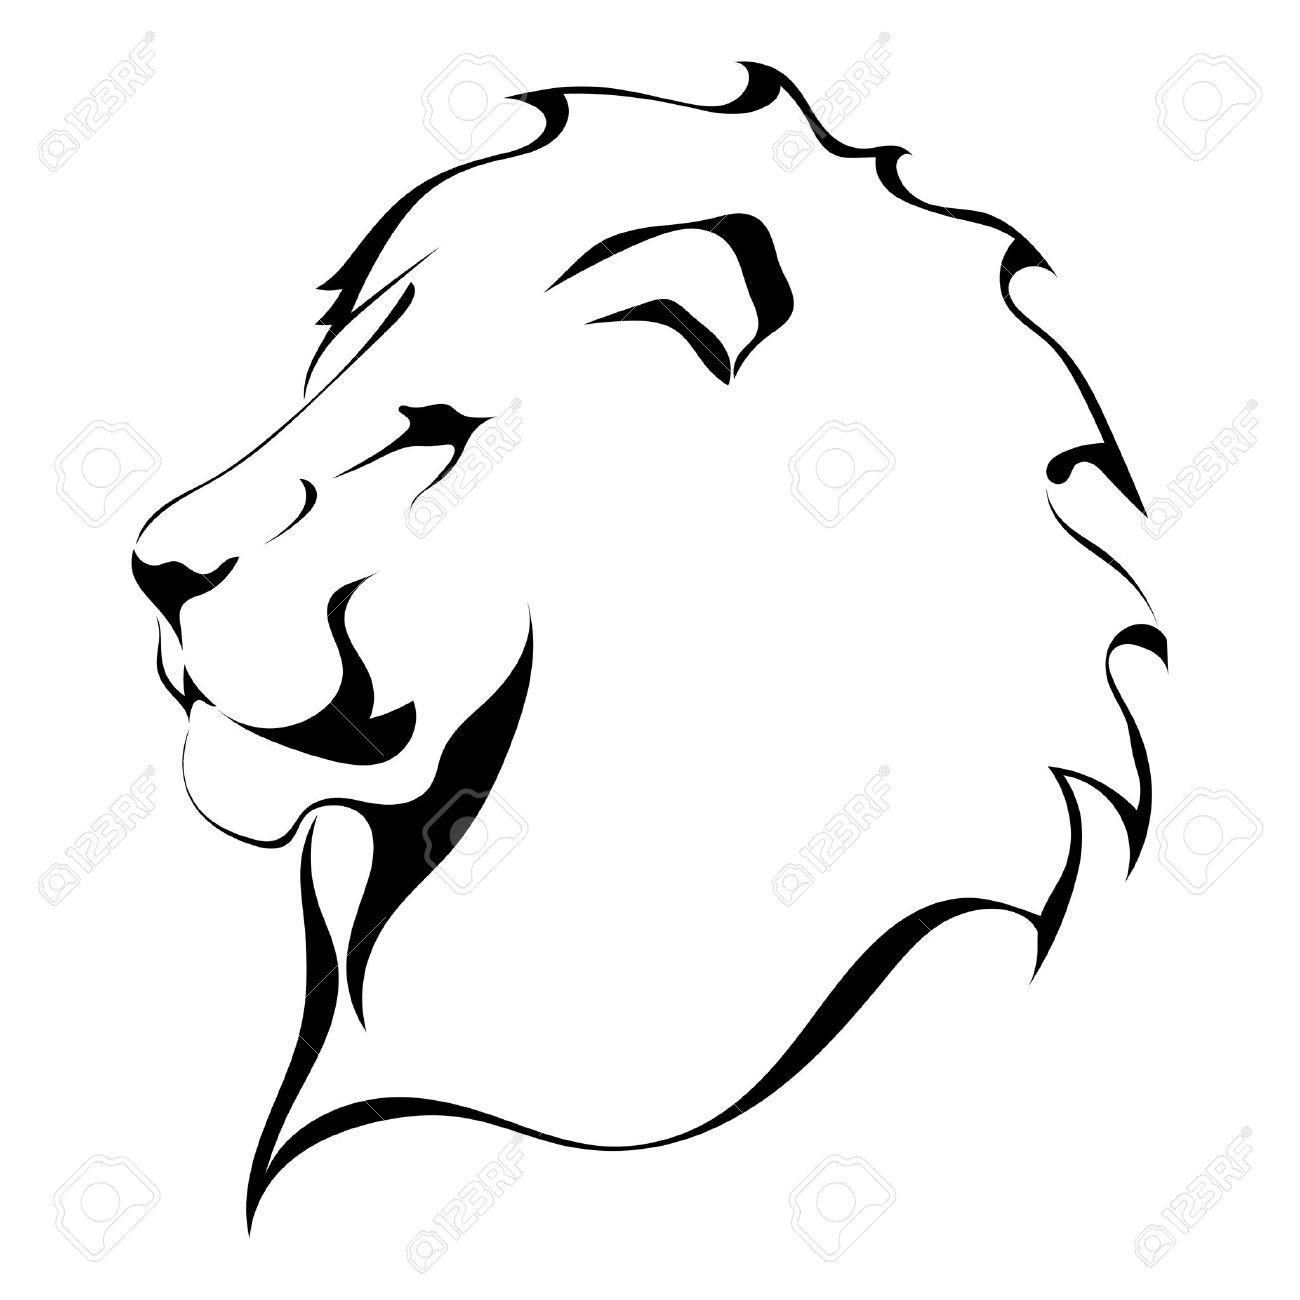 Outline Of A Lion aslan Clipart Black and White Outline Clipground